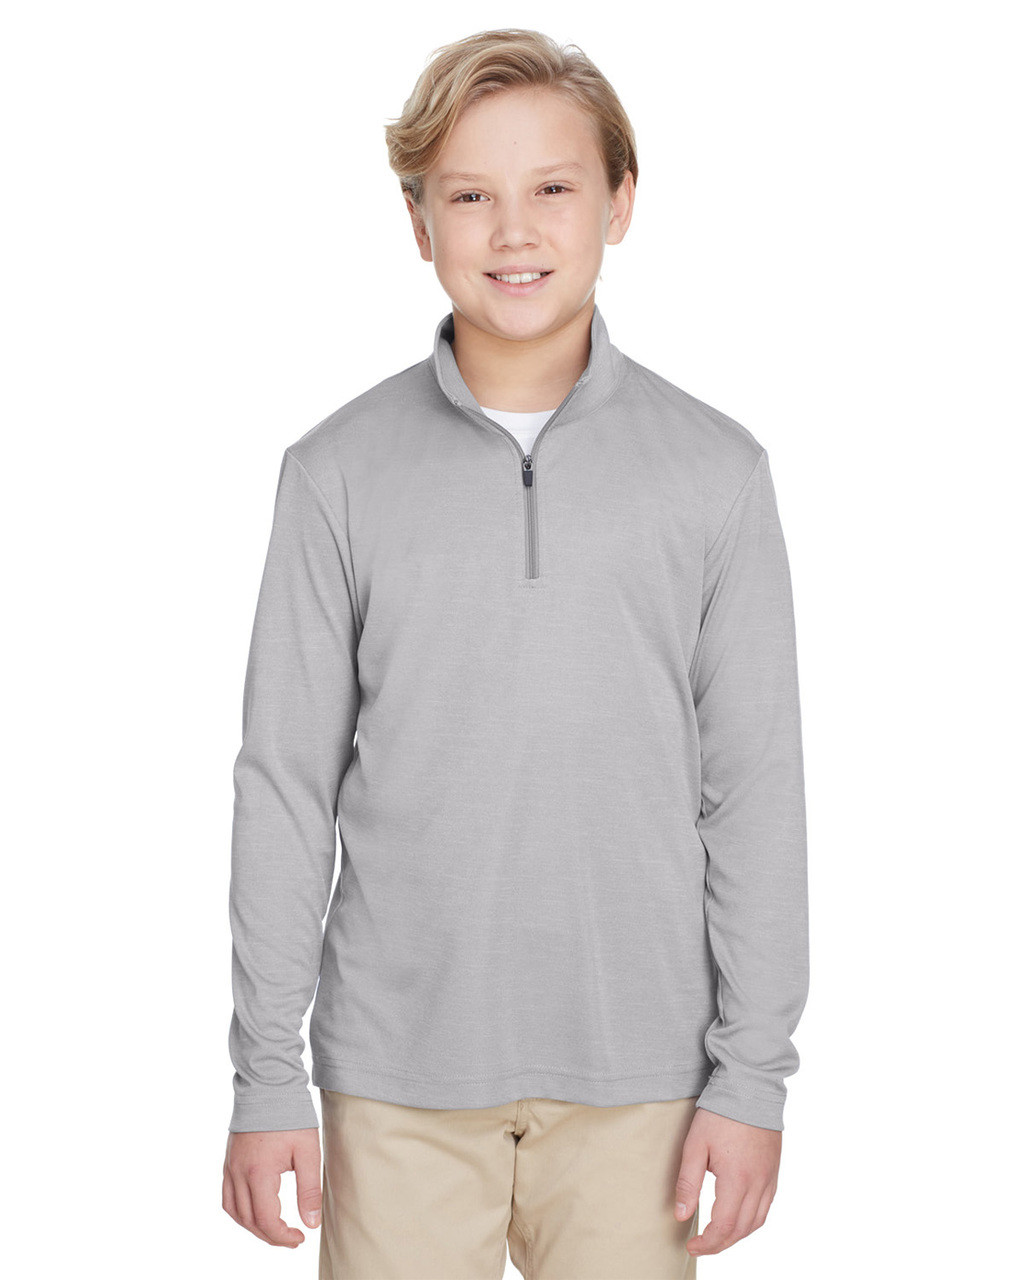 Athletic Heather - TT31HY Team 365 Youth Zone Sonic Heather Performance Quarter-Zip Athletic Shirt | BlankClothing.ca